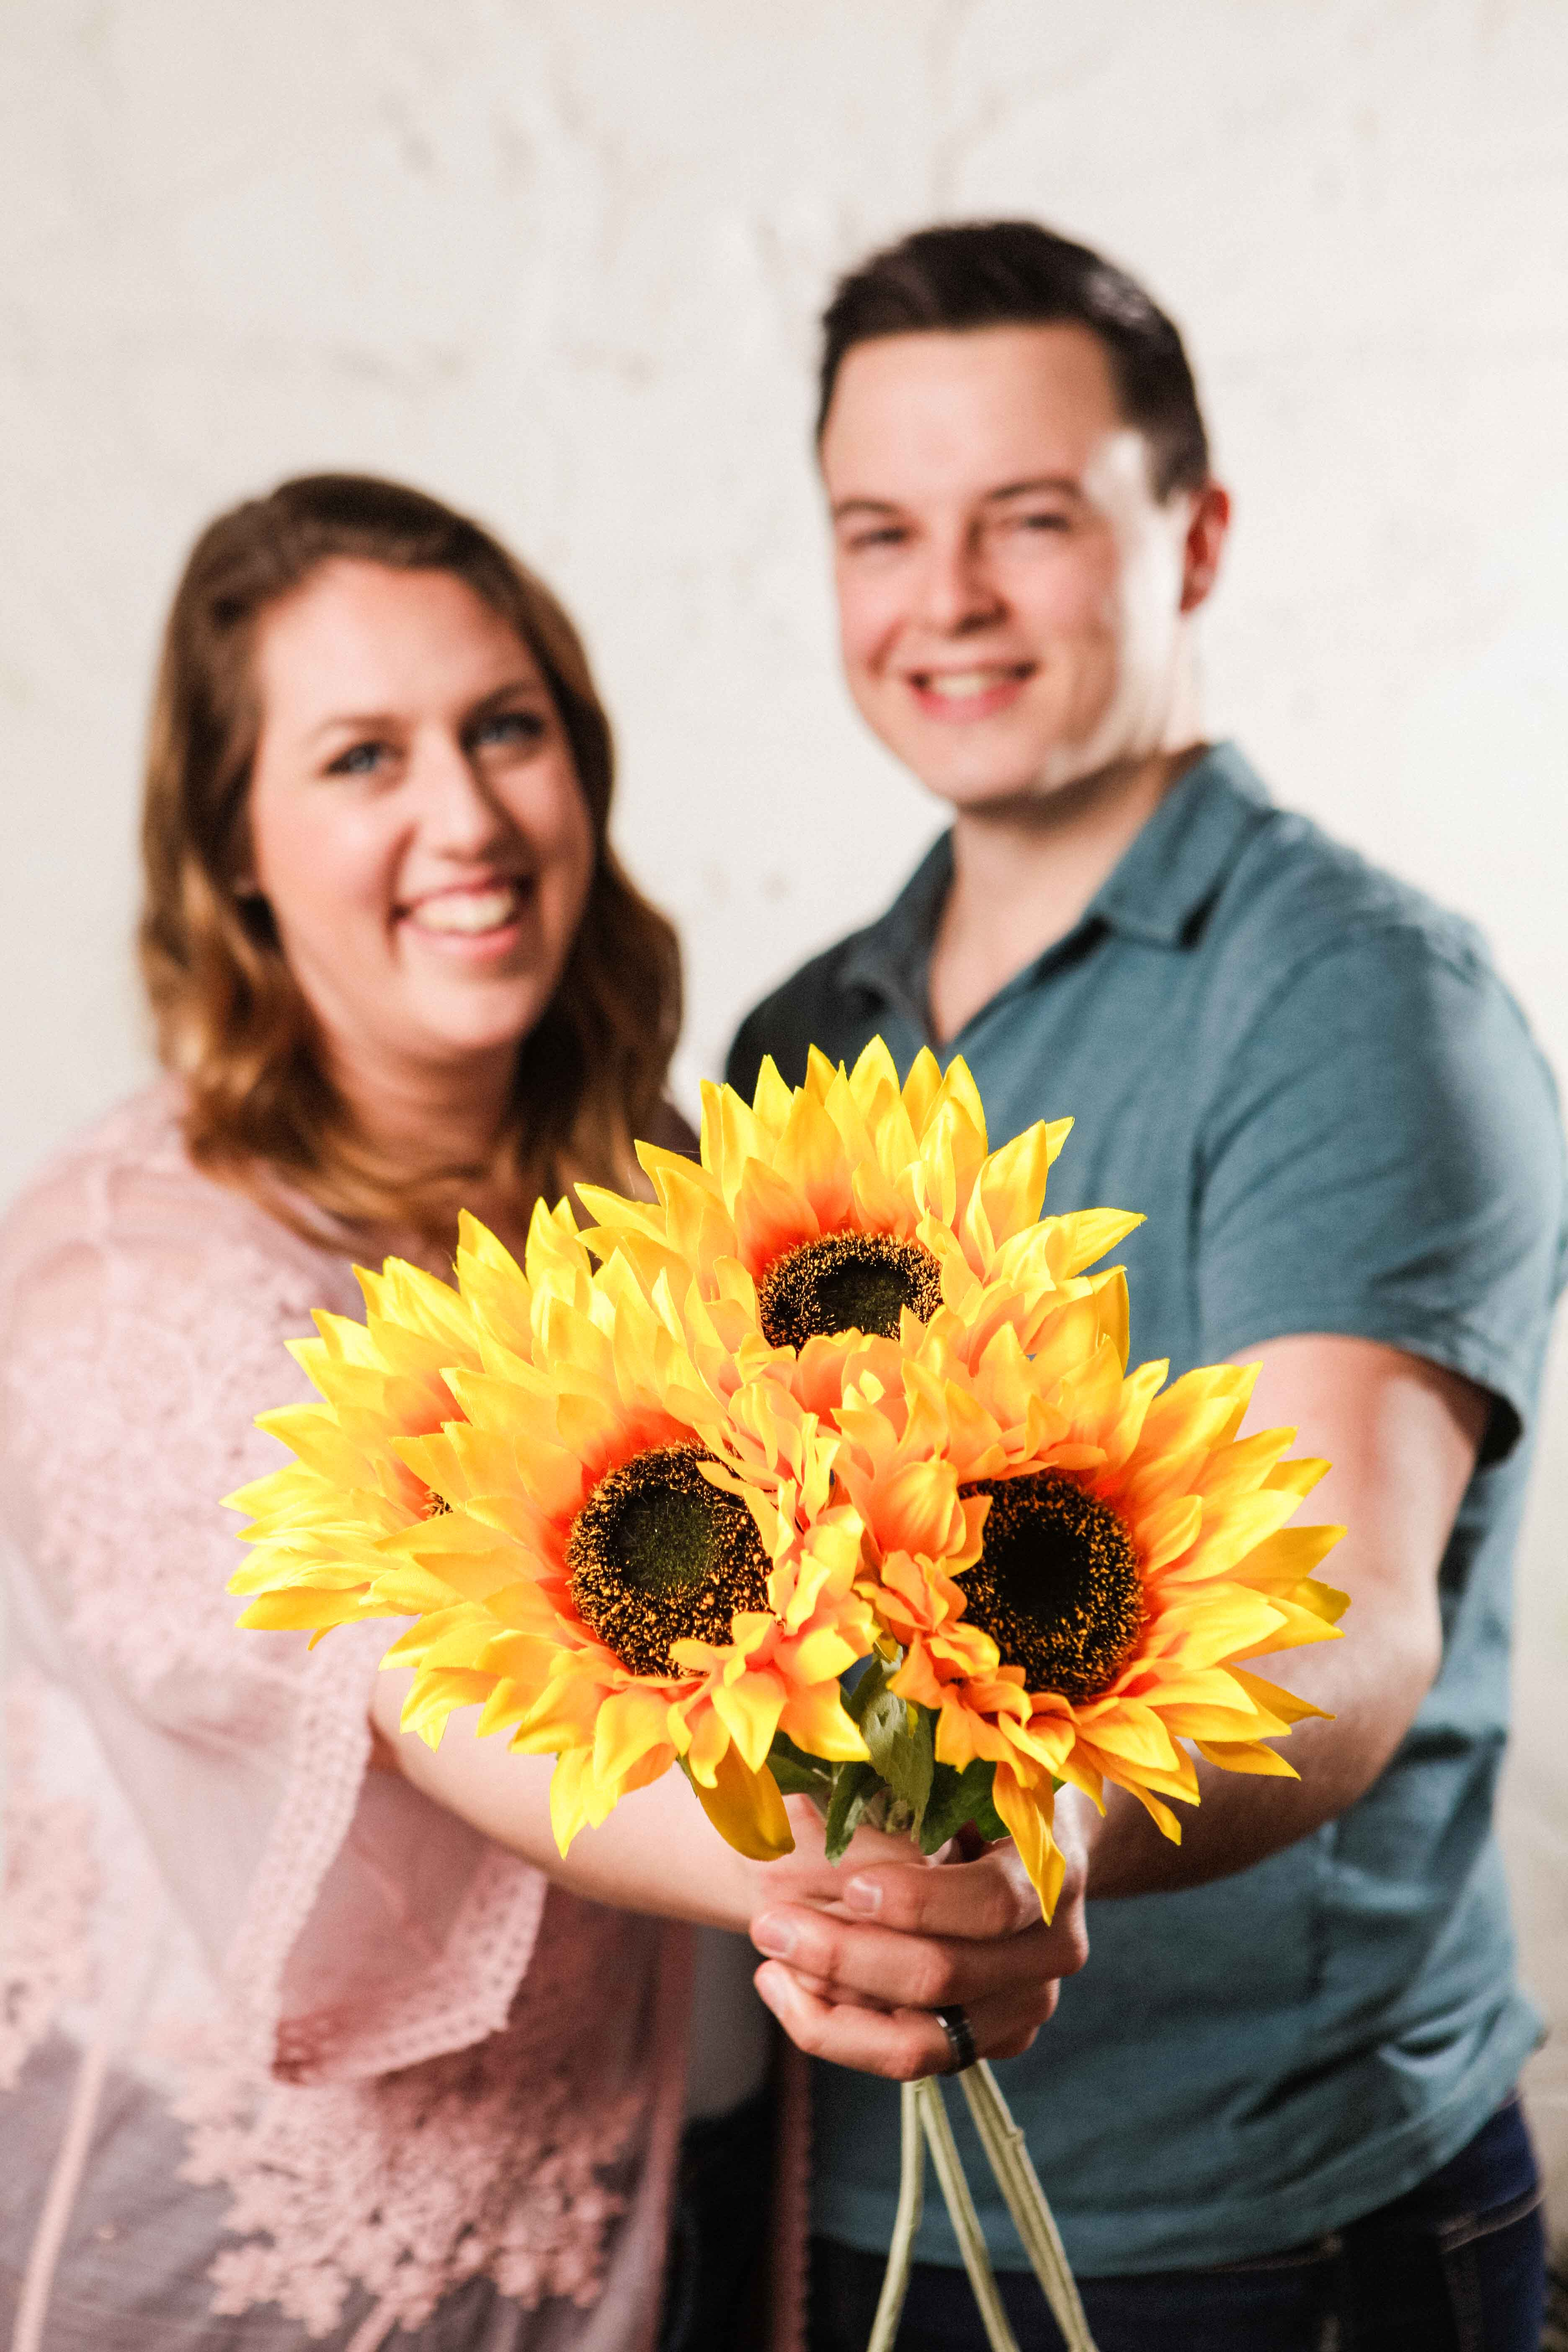 Photo of Stephanie and Jakob from Fields of Gold holding a bundle of sunflowers